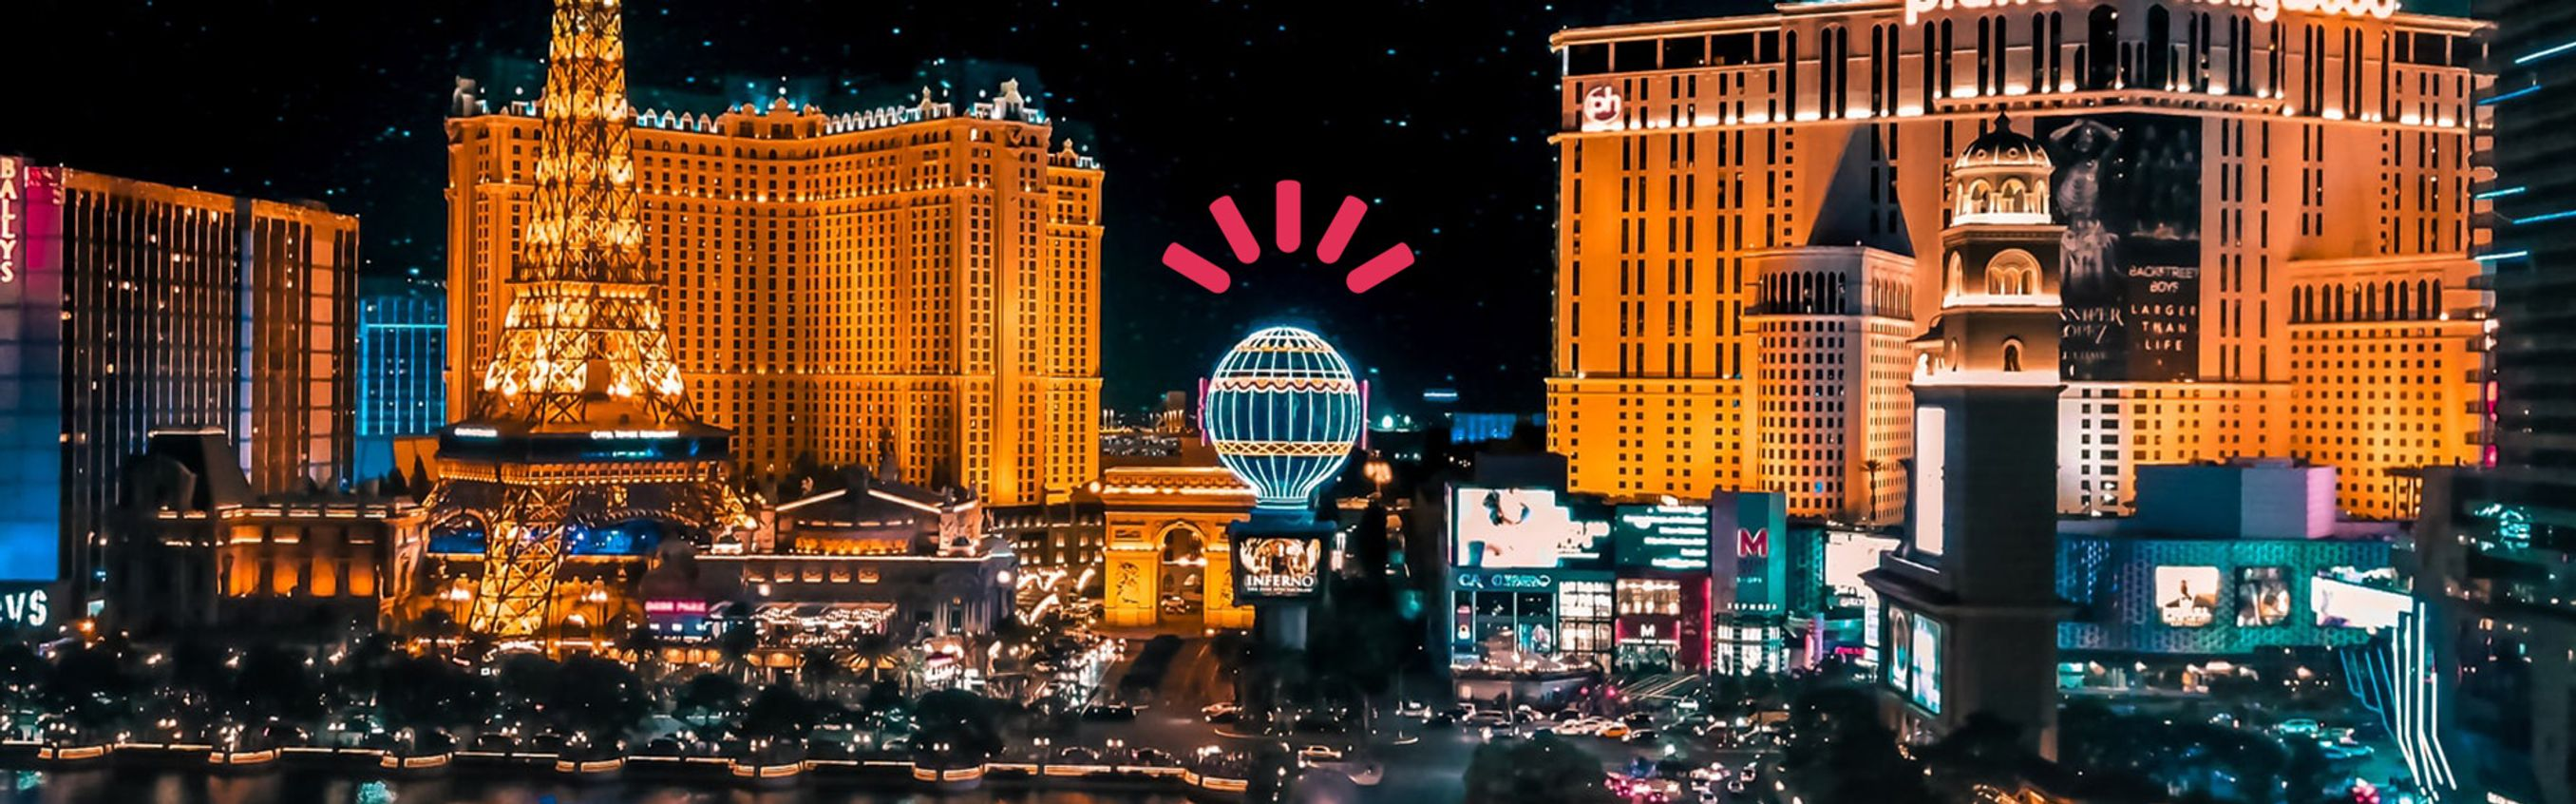 Las Vegas Black Friday Cyber Monday Hotel Deals In 2020 Skyscanner